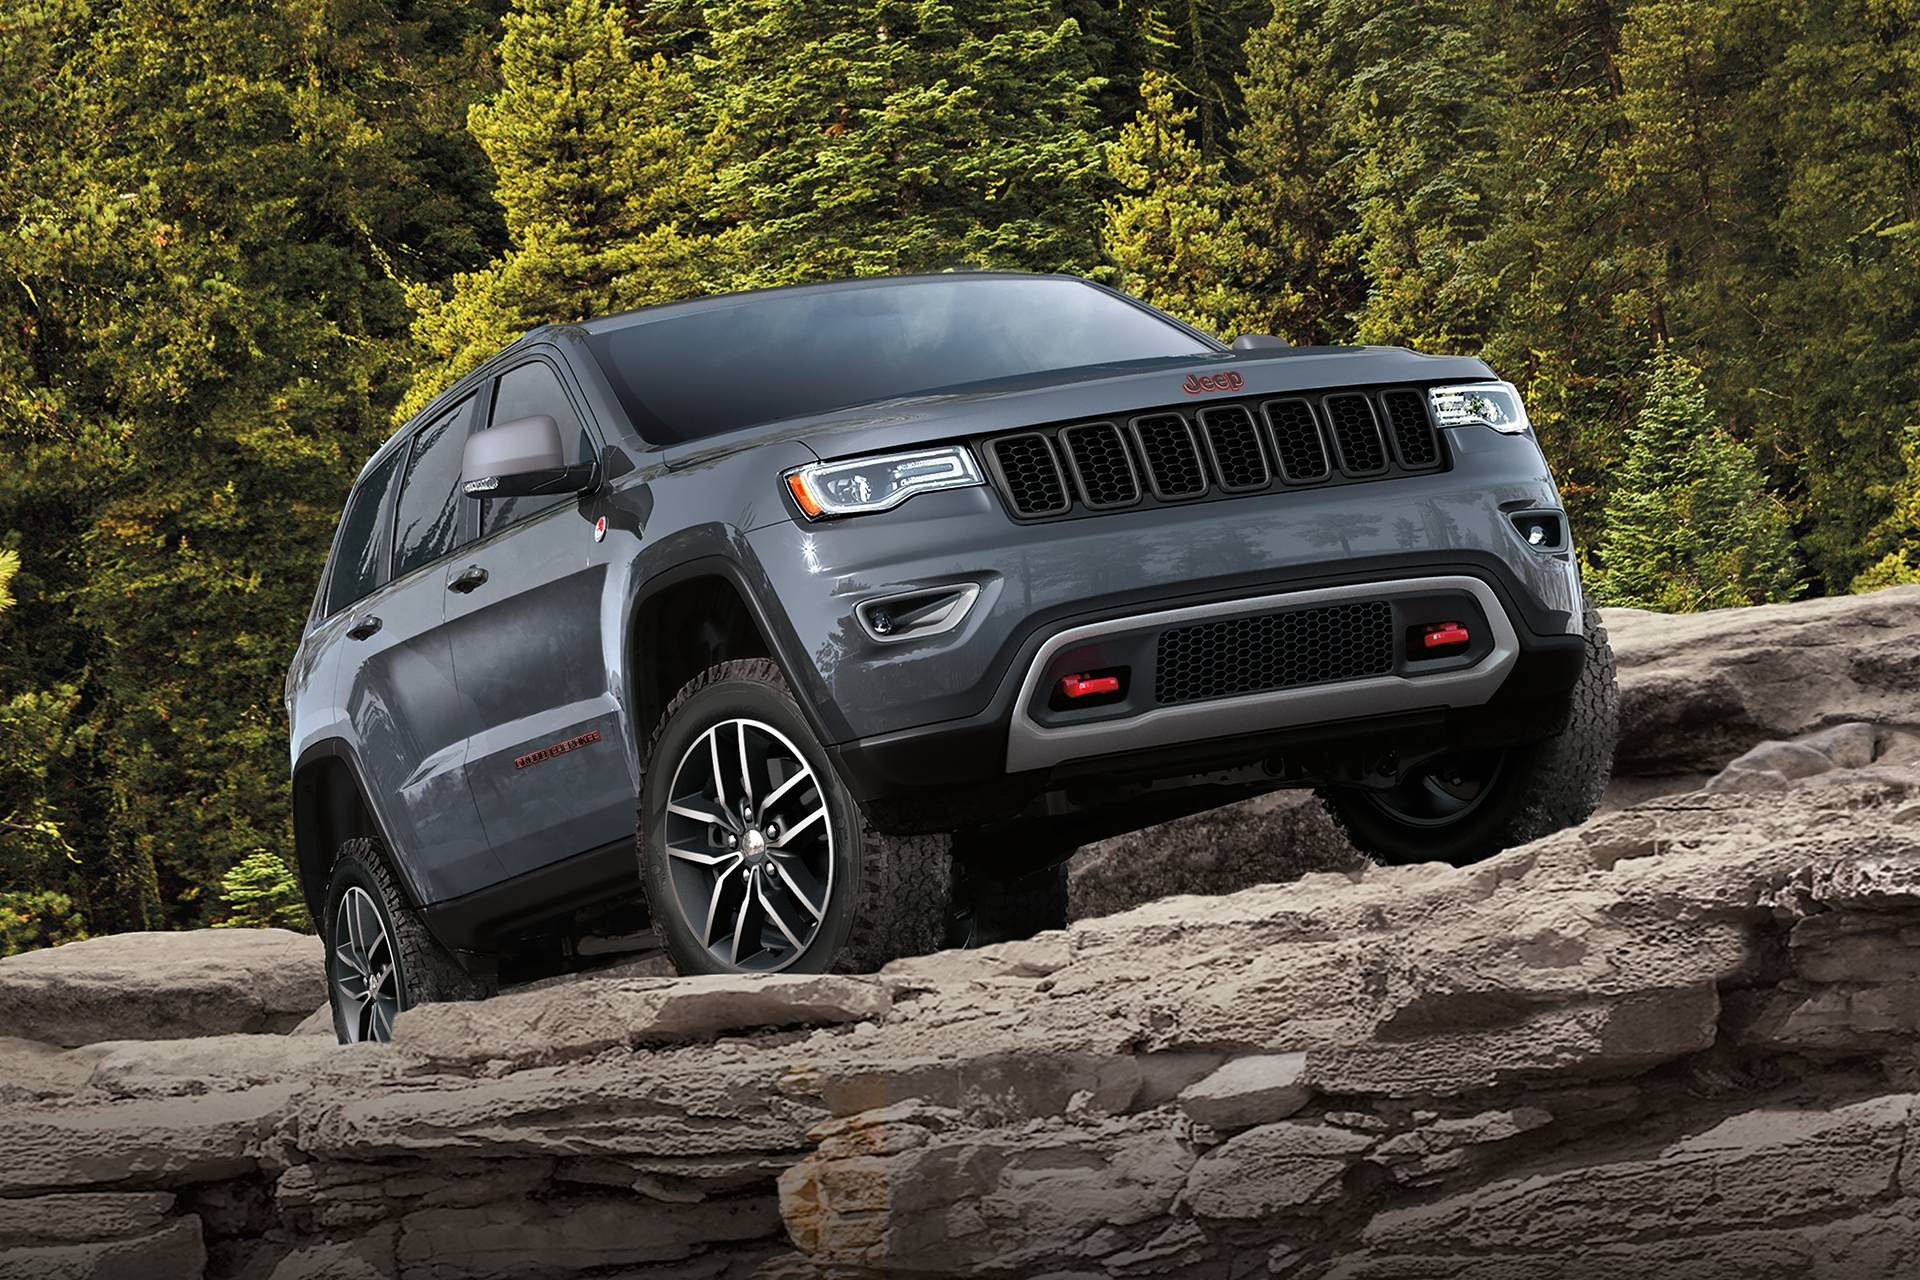 2018 Jeep Grand Cherokee SUV side view, off-road driving on rocks, shown in red